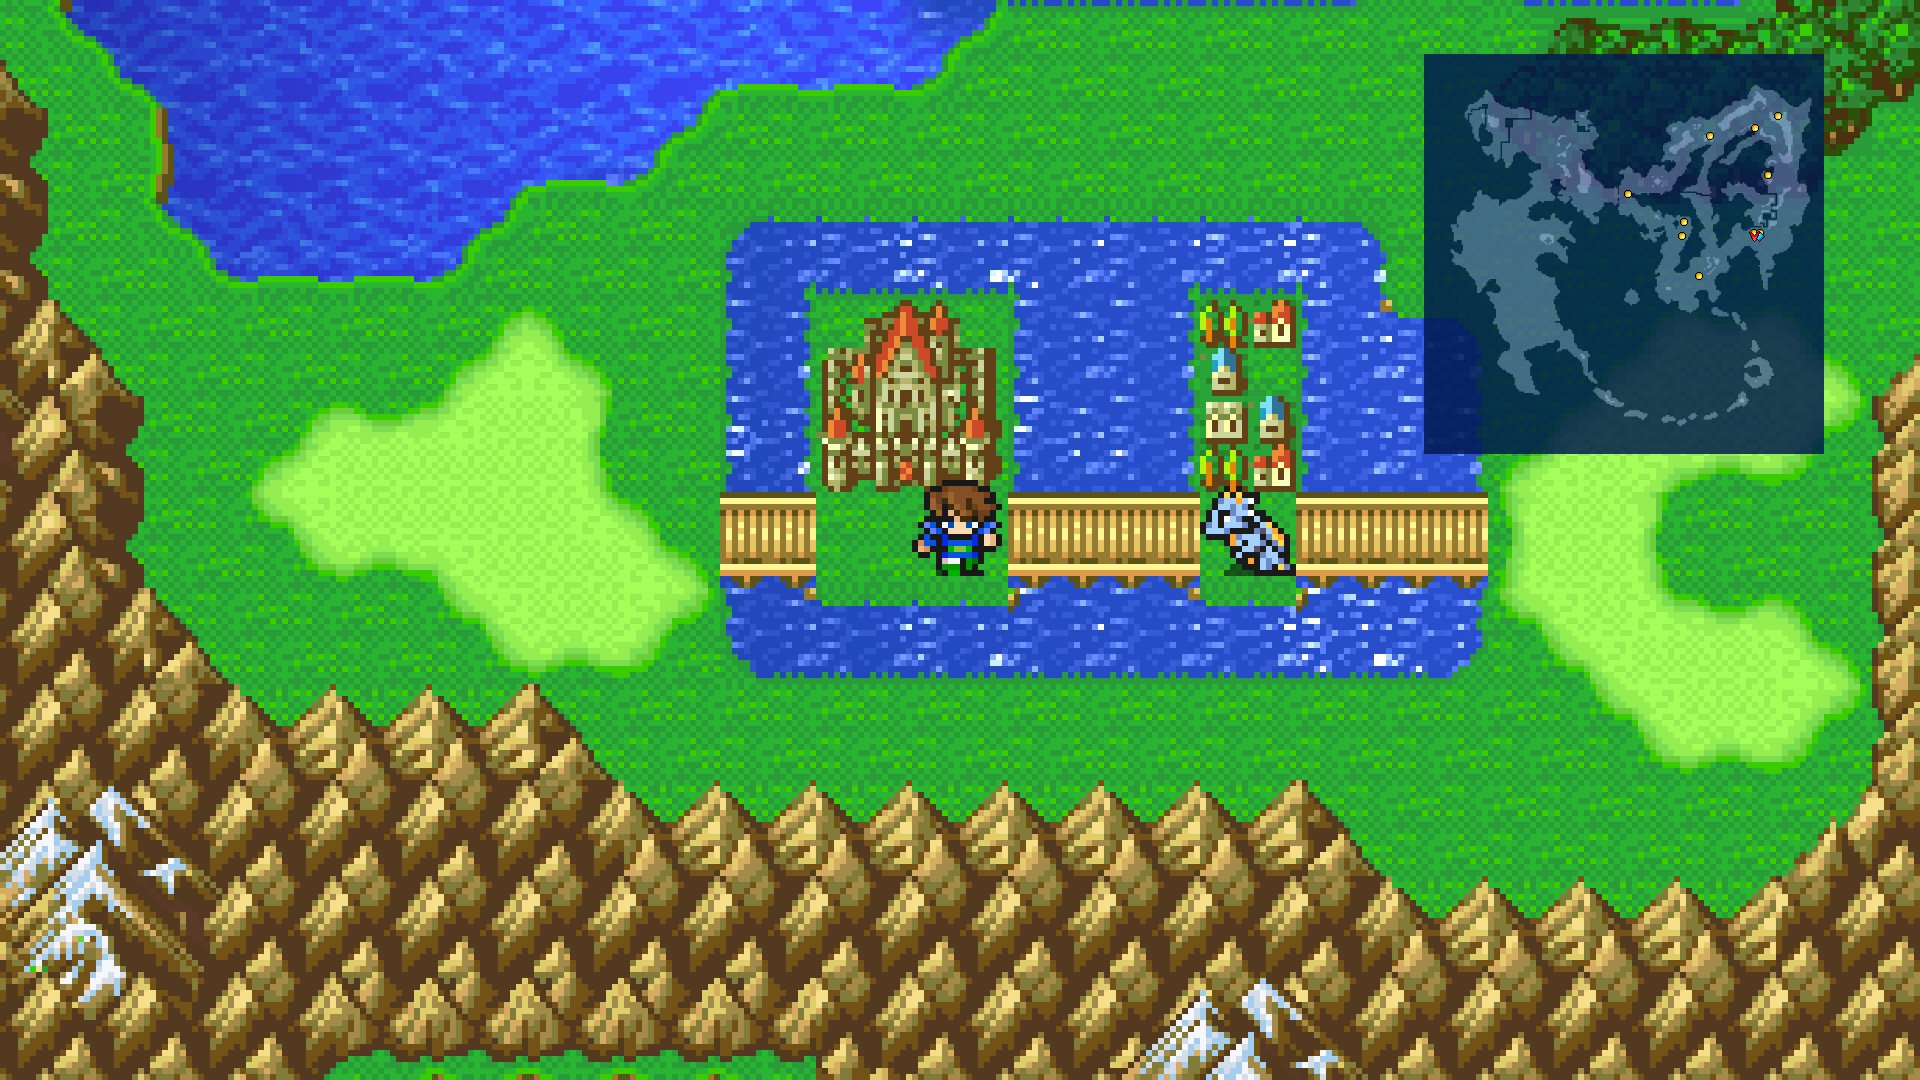 'Final Fantasy V' Pixel Remaster Releases on November 10th for iOS, Android, and Steam